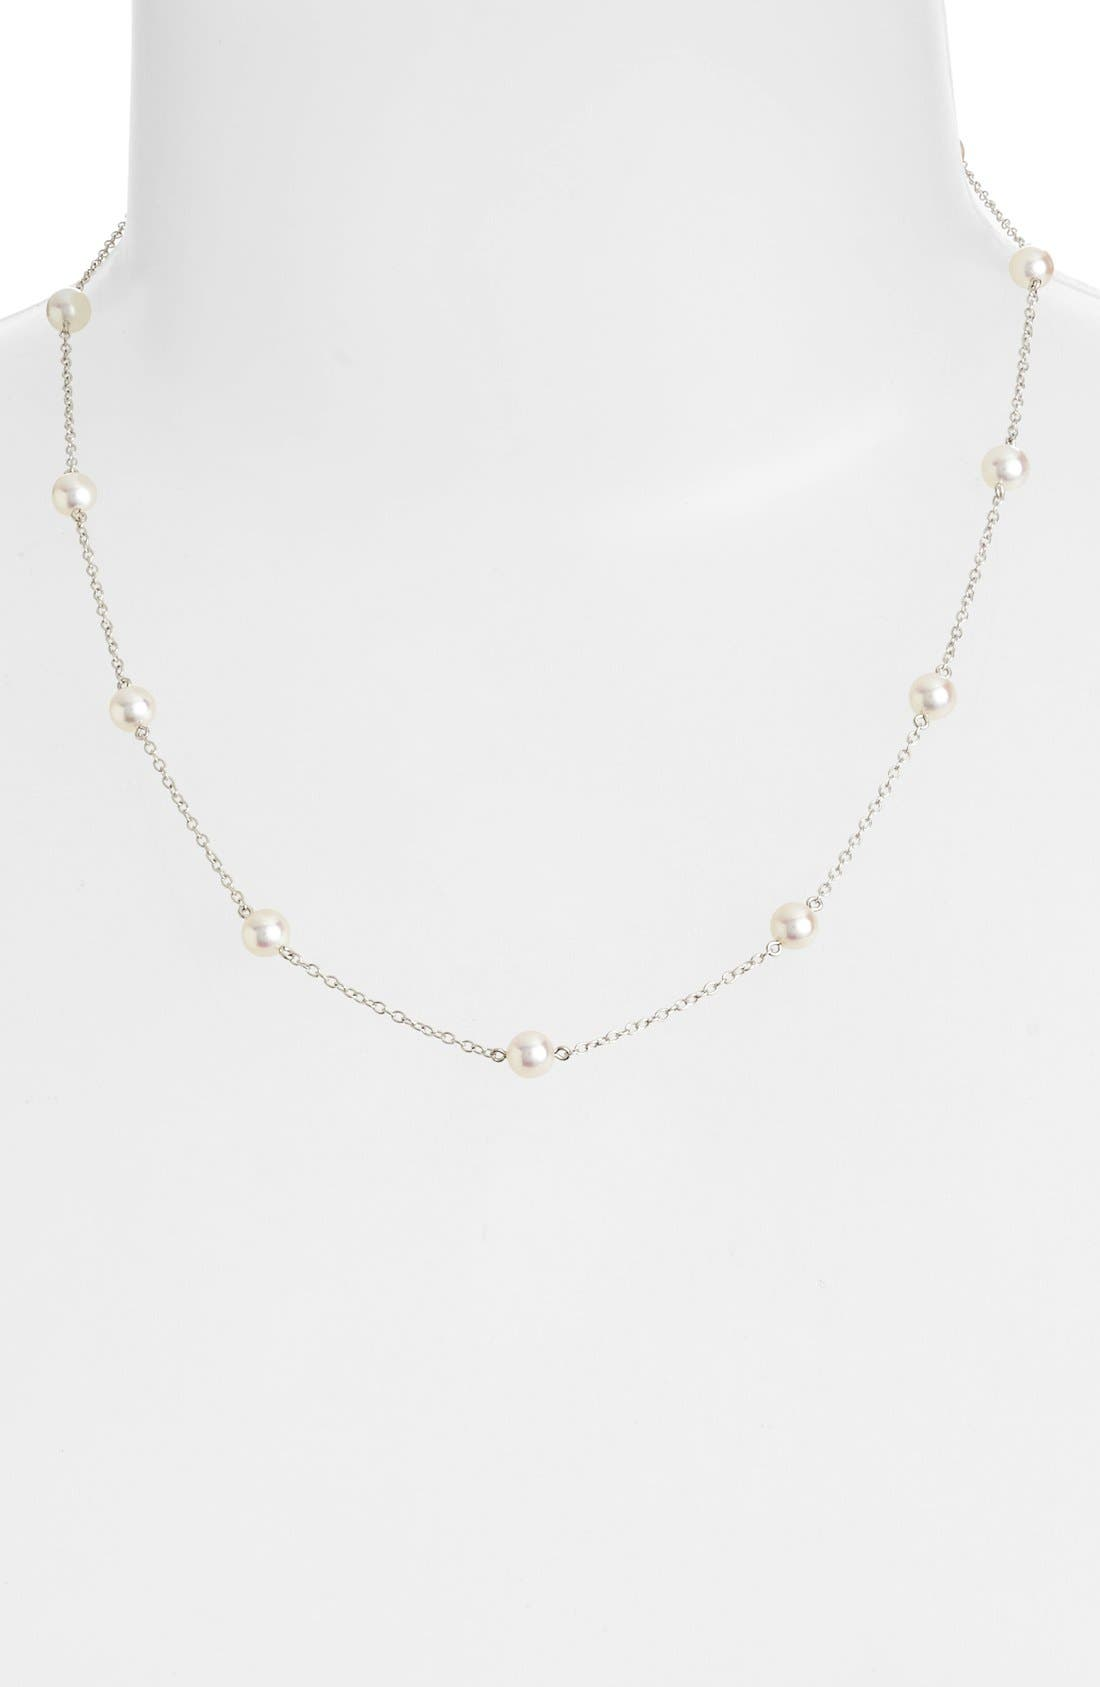 Chain & Pearl Necklace,                         Main,                         color, NO COLOR